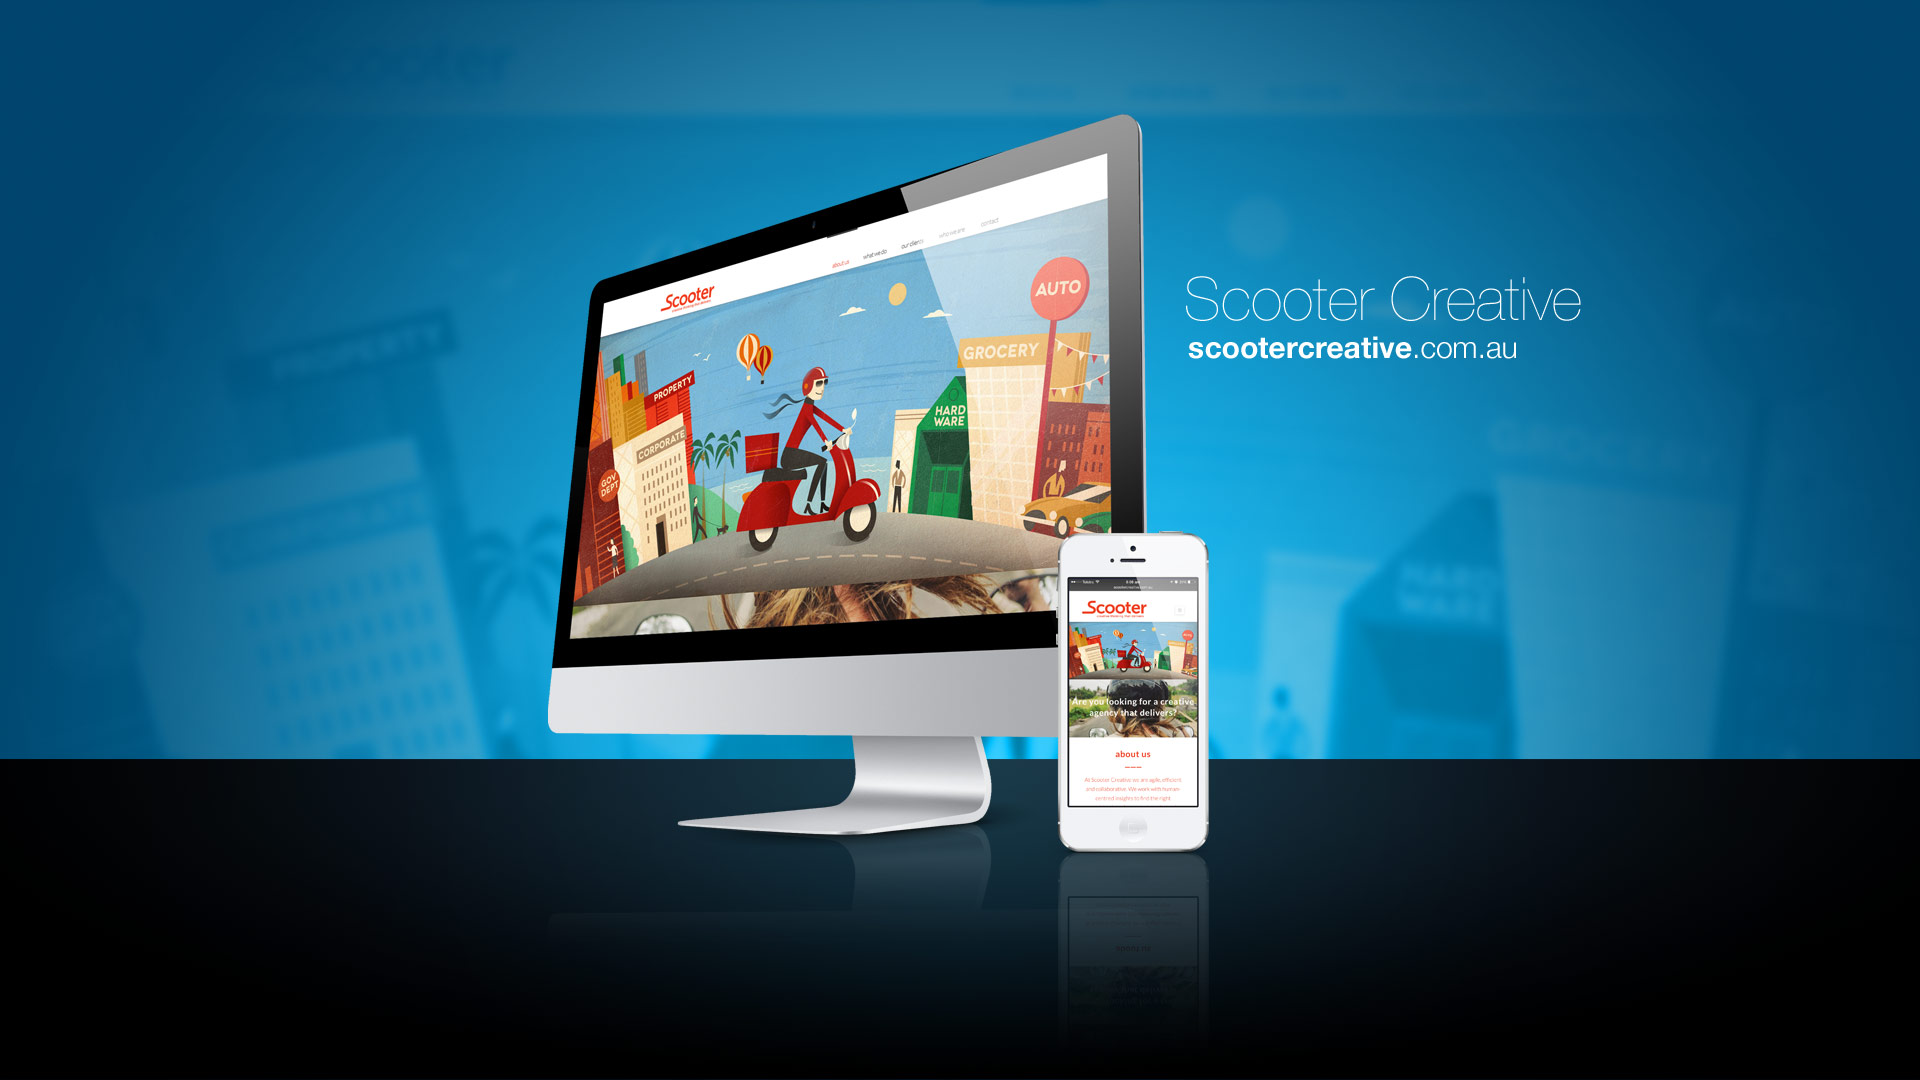 wordpress-website-design-melbourne_scooter-creative